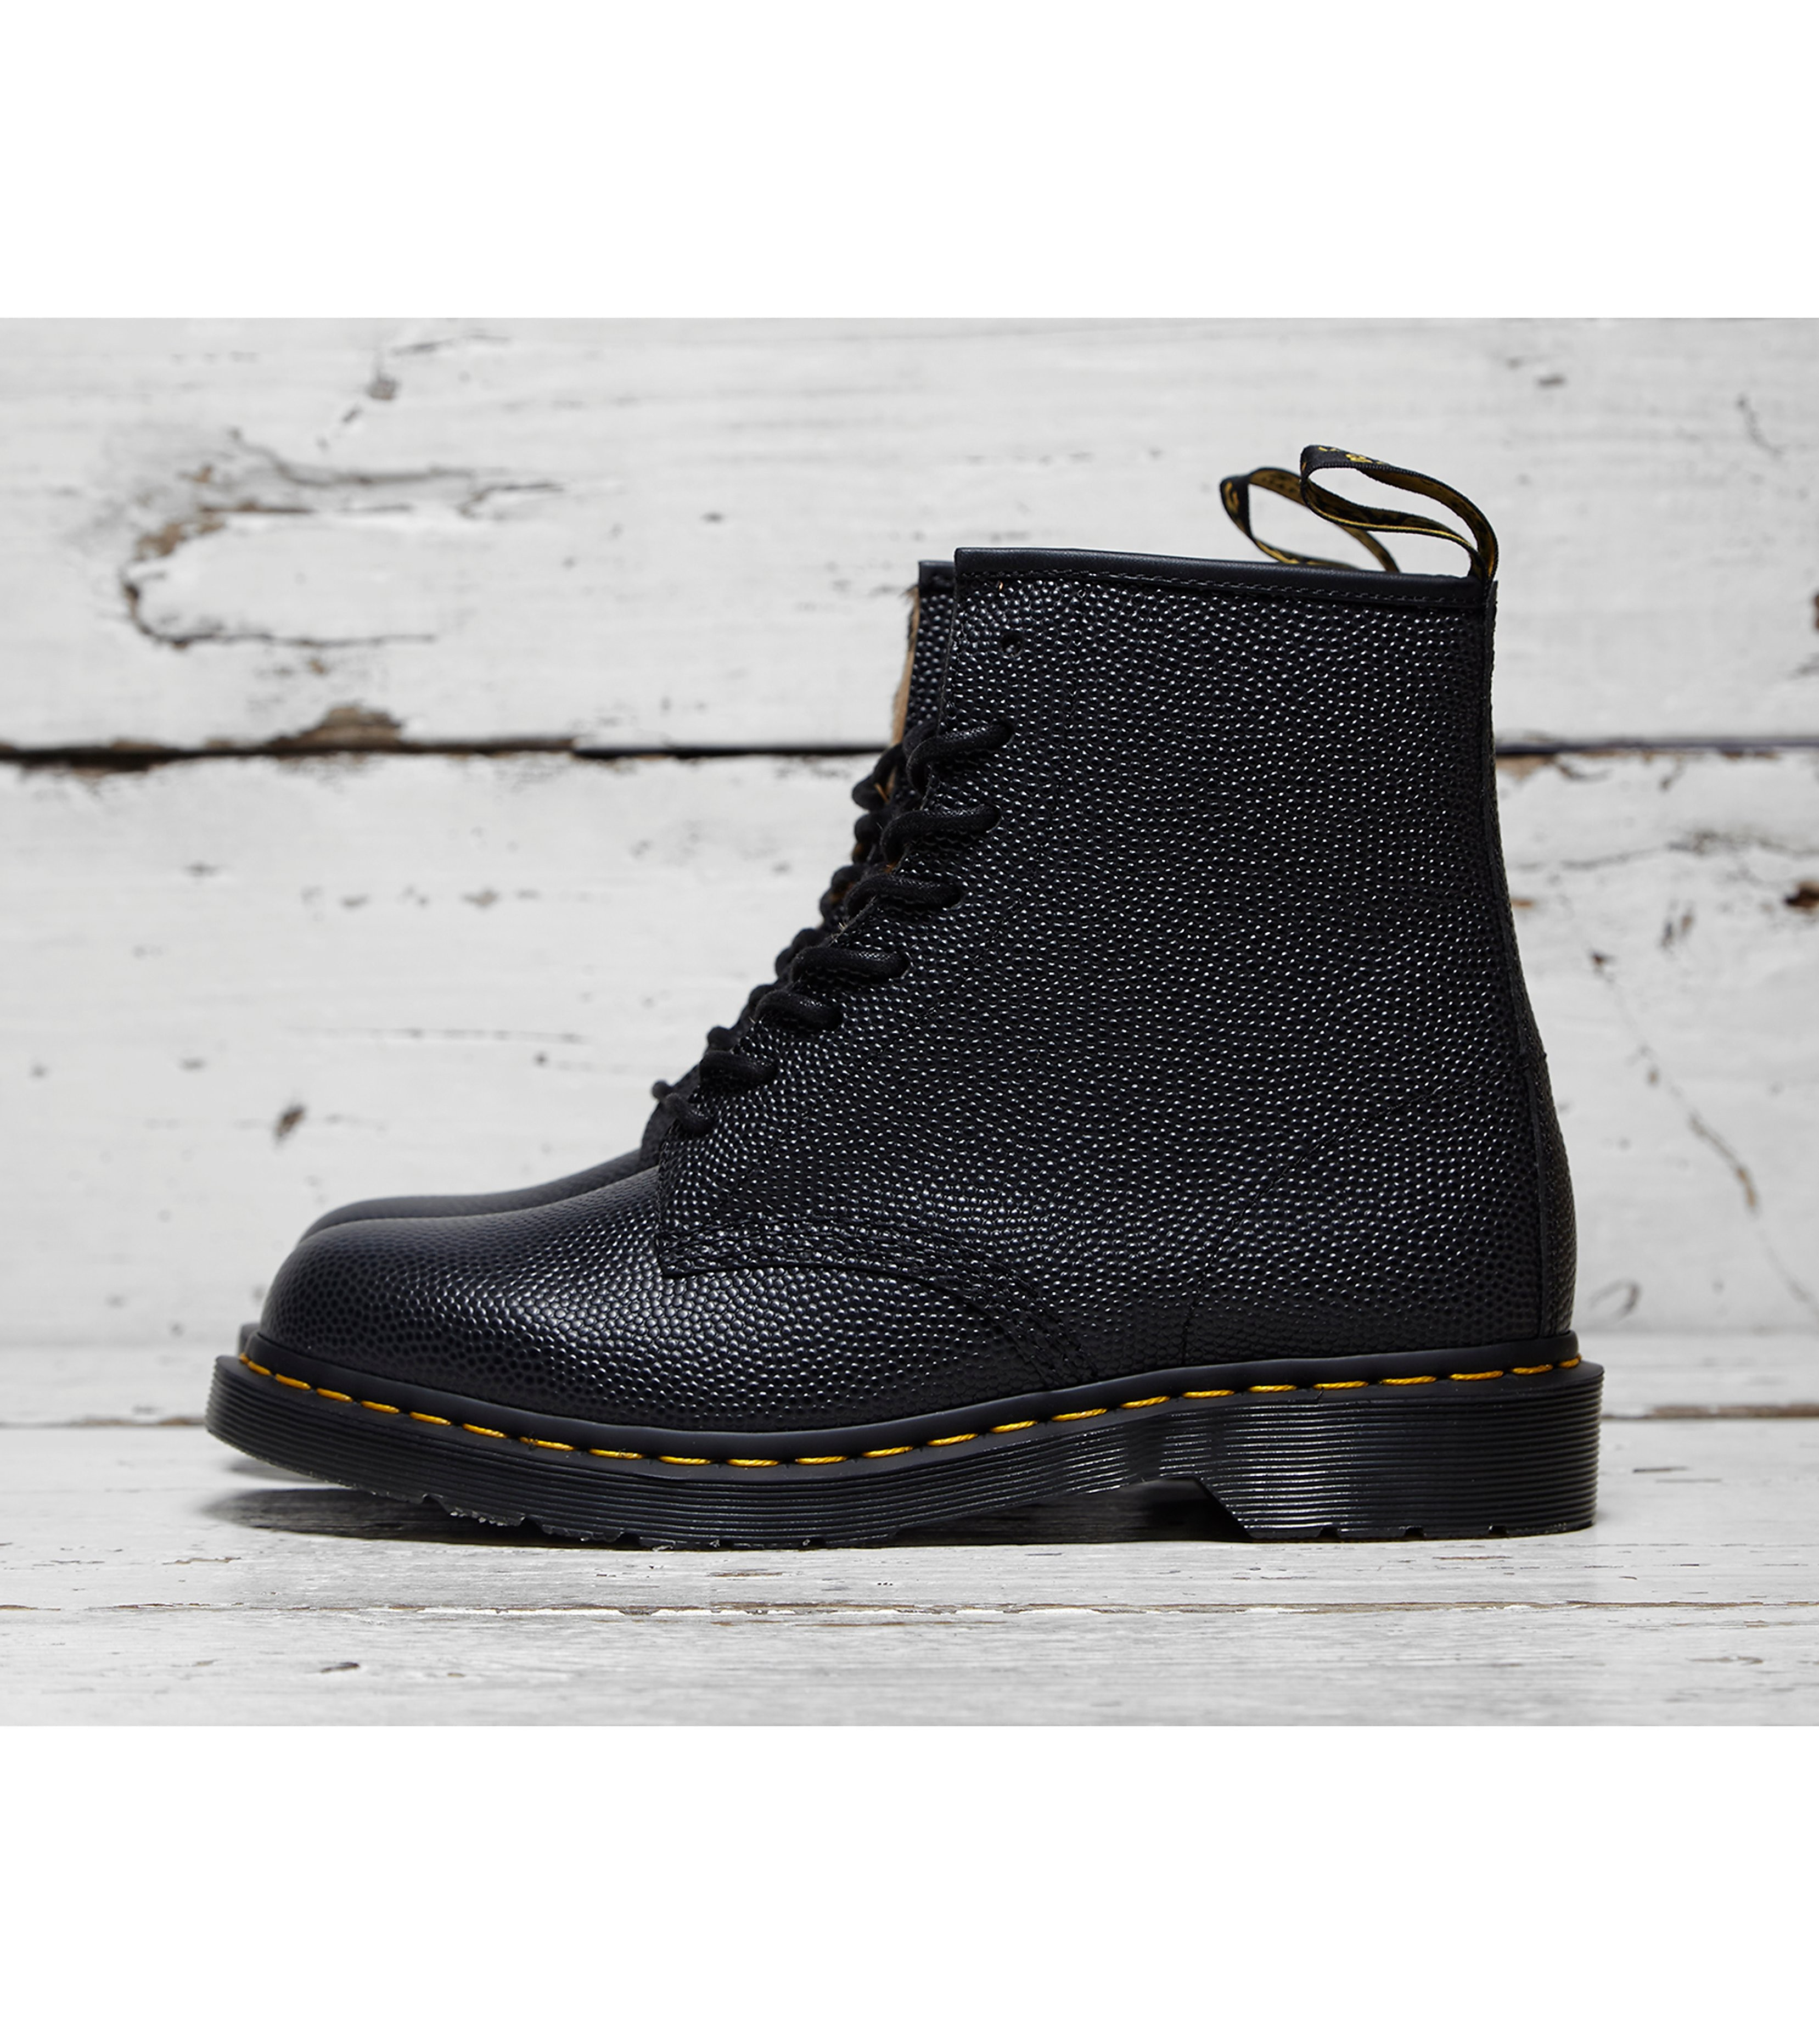 DR. MARTENS x Stussy 1460 8 Eye Boot